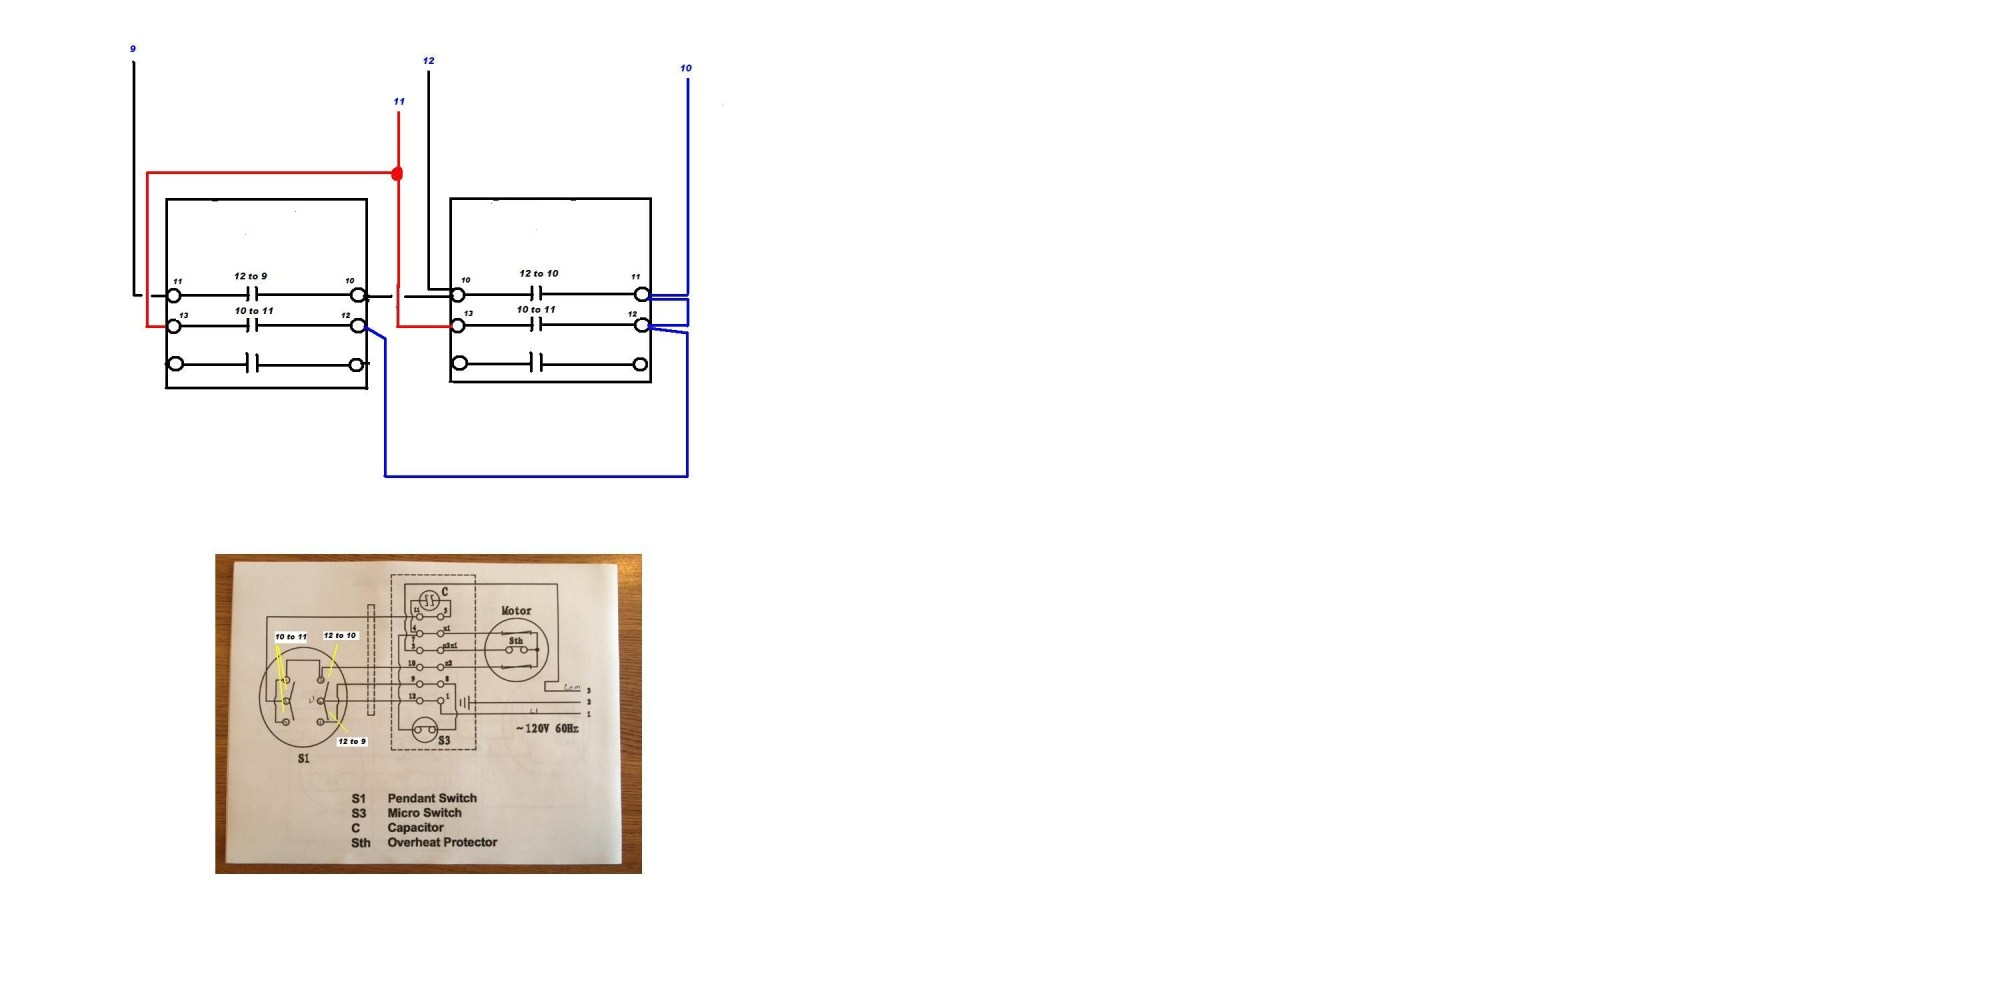 hight resolution of demag crane electrical diagram wiring schematic data demag motor wiring diagram get free image about wiring diagram